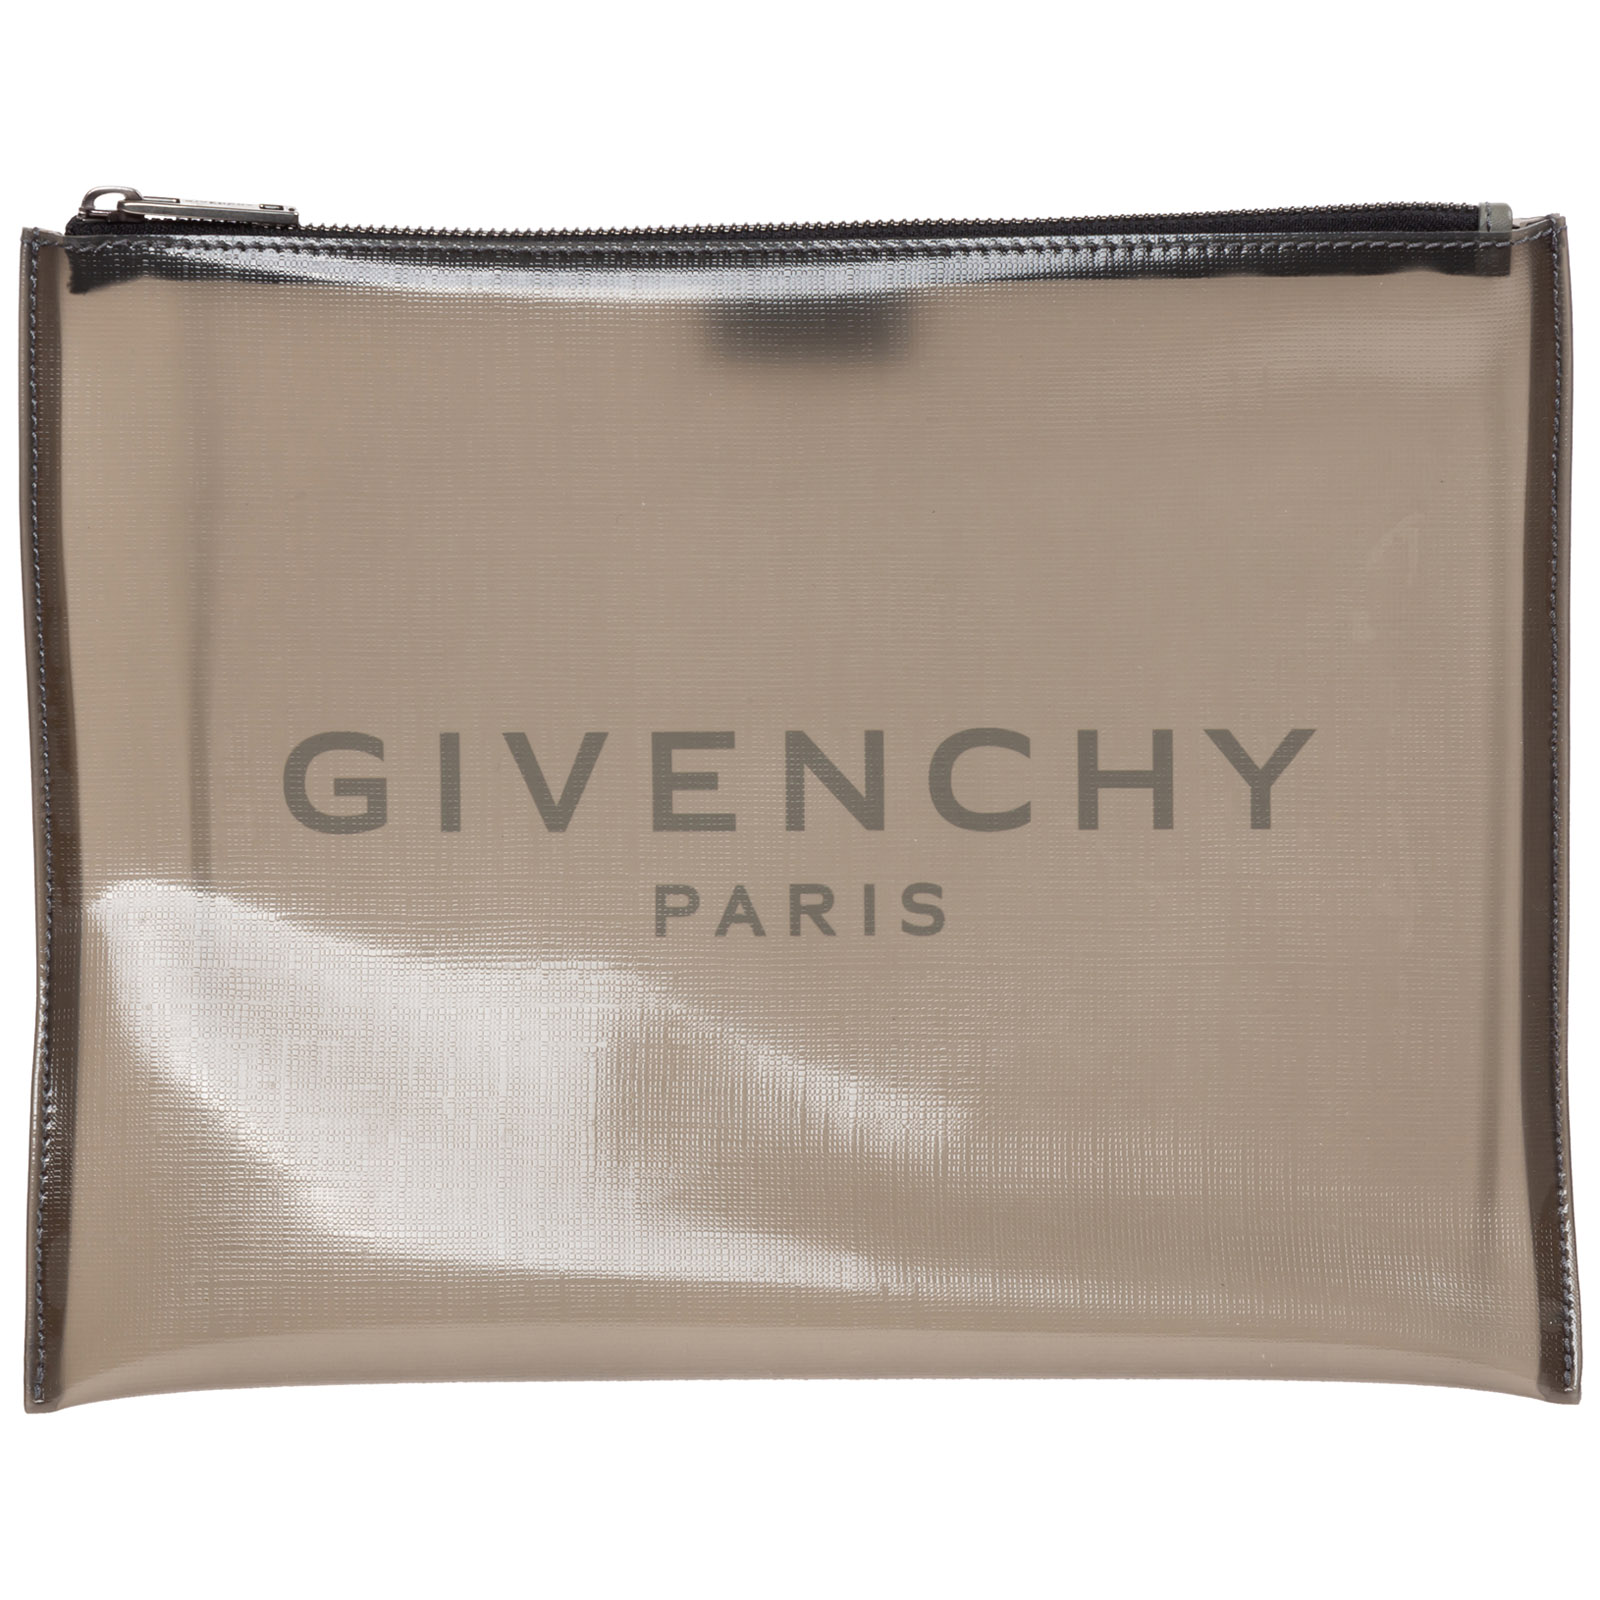 Givenchy Men's Briefcase Document Holder Wallet In Grey